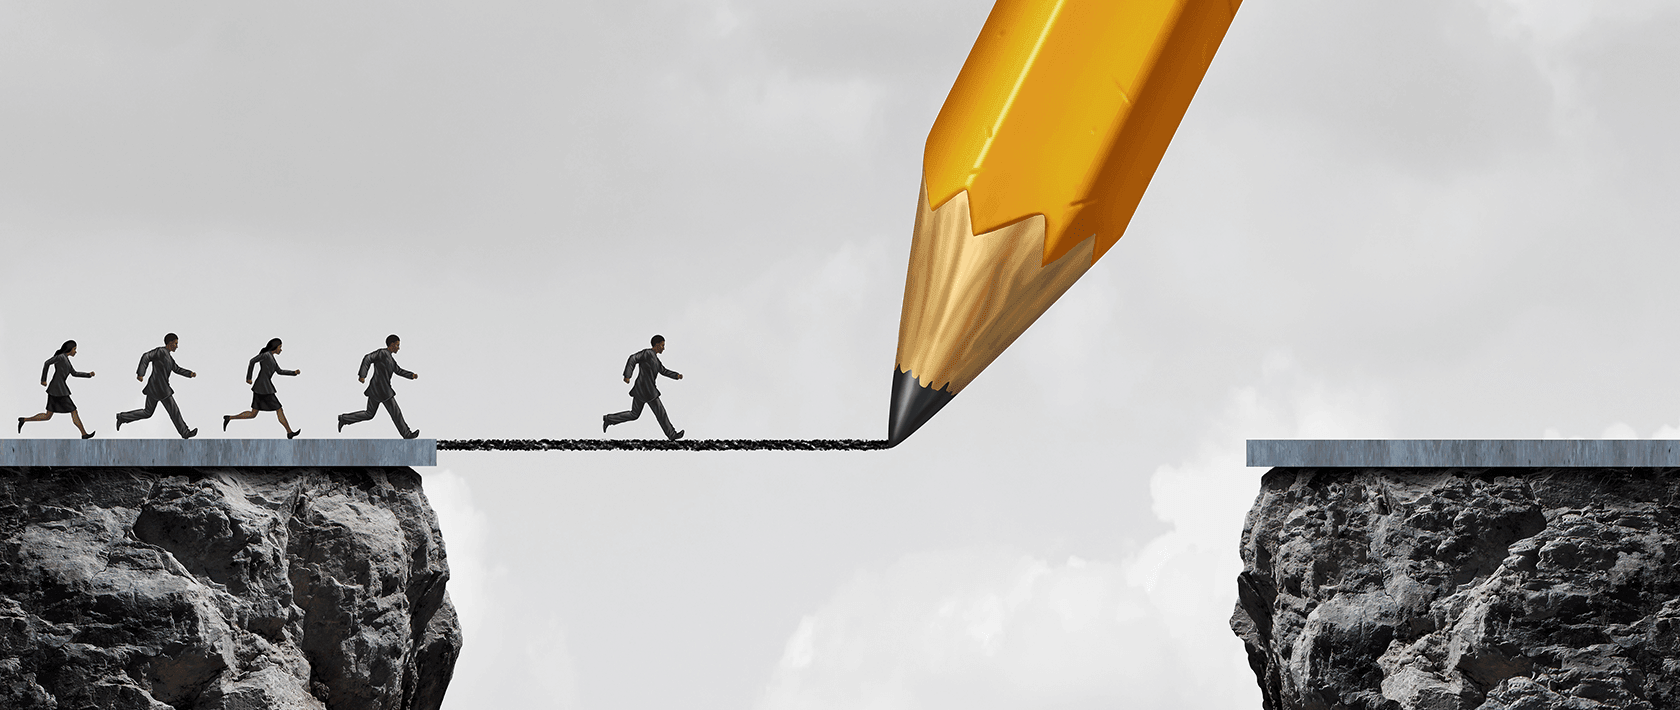 How well are you closing your risk gaps?